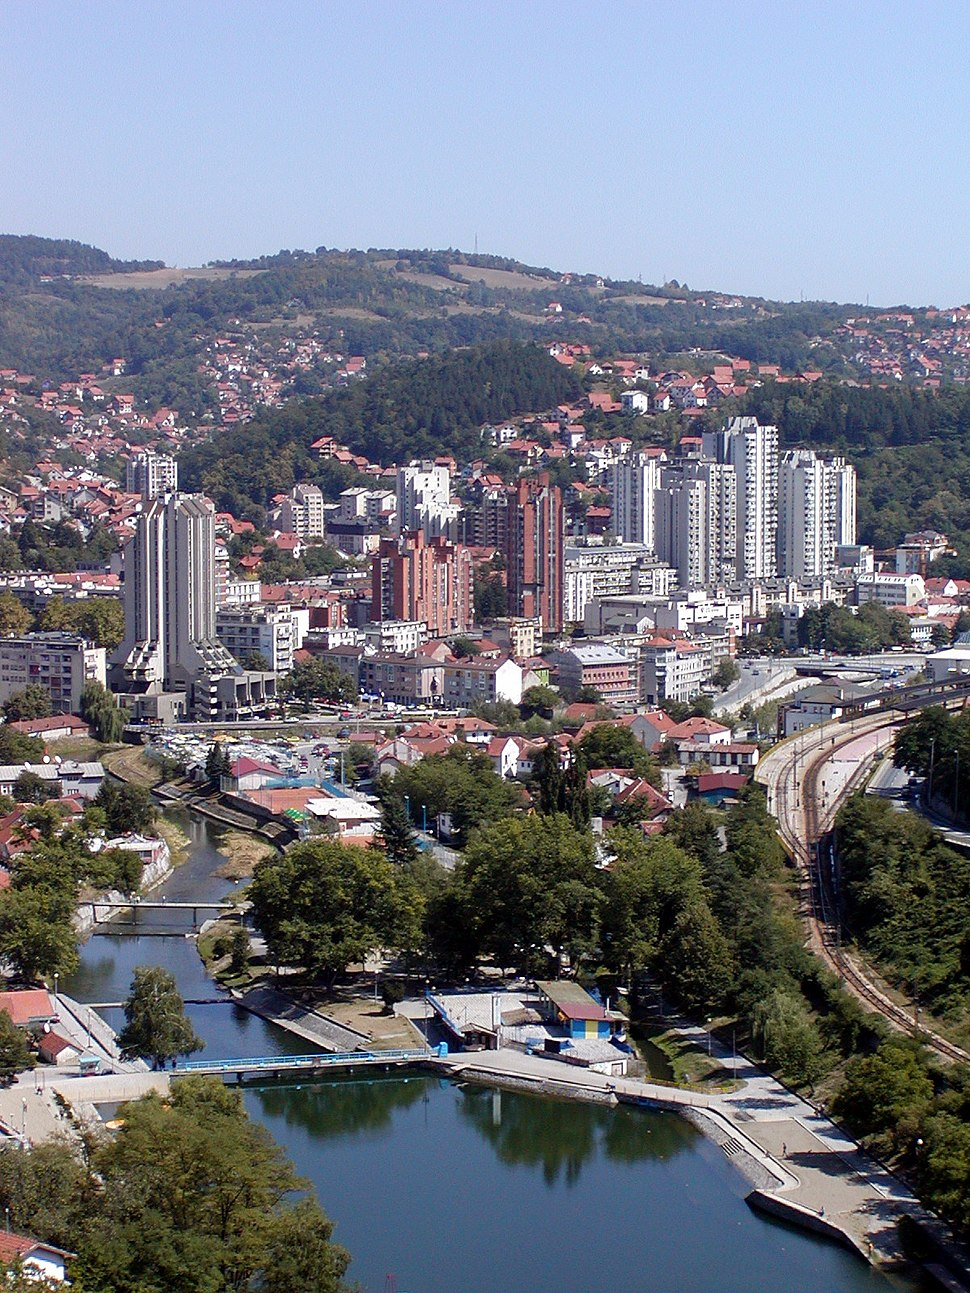 Uzice-by-pedja-supurovic-05